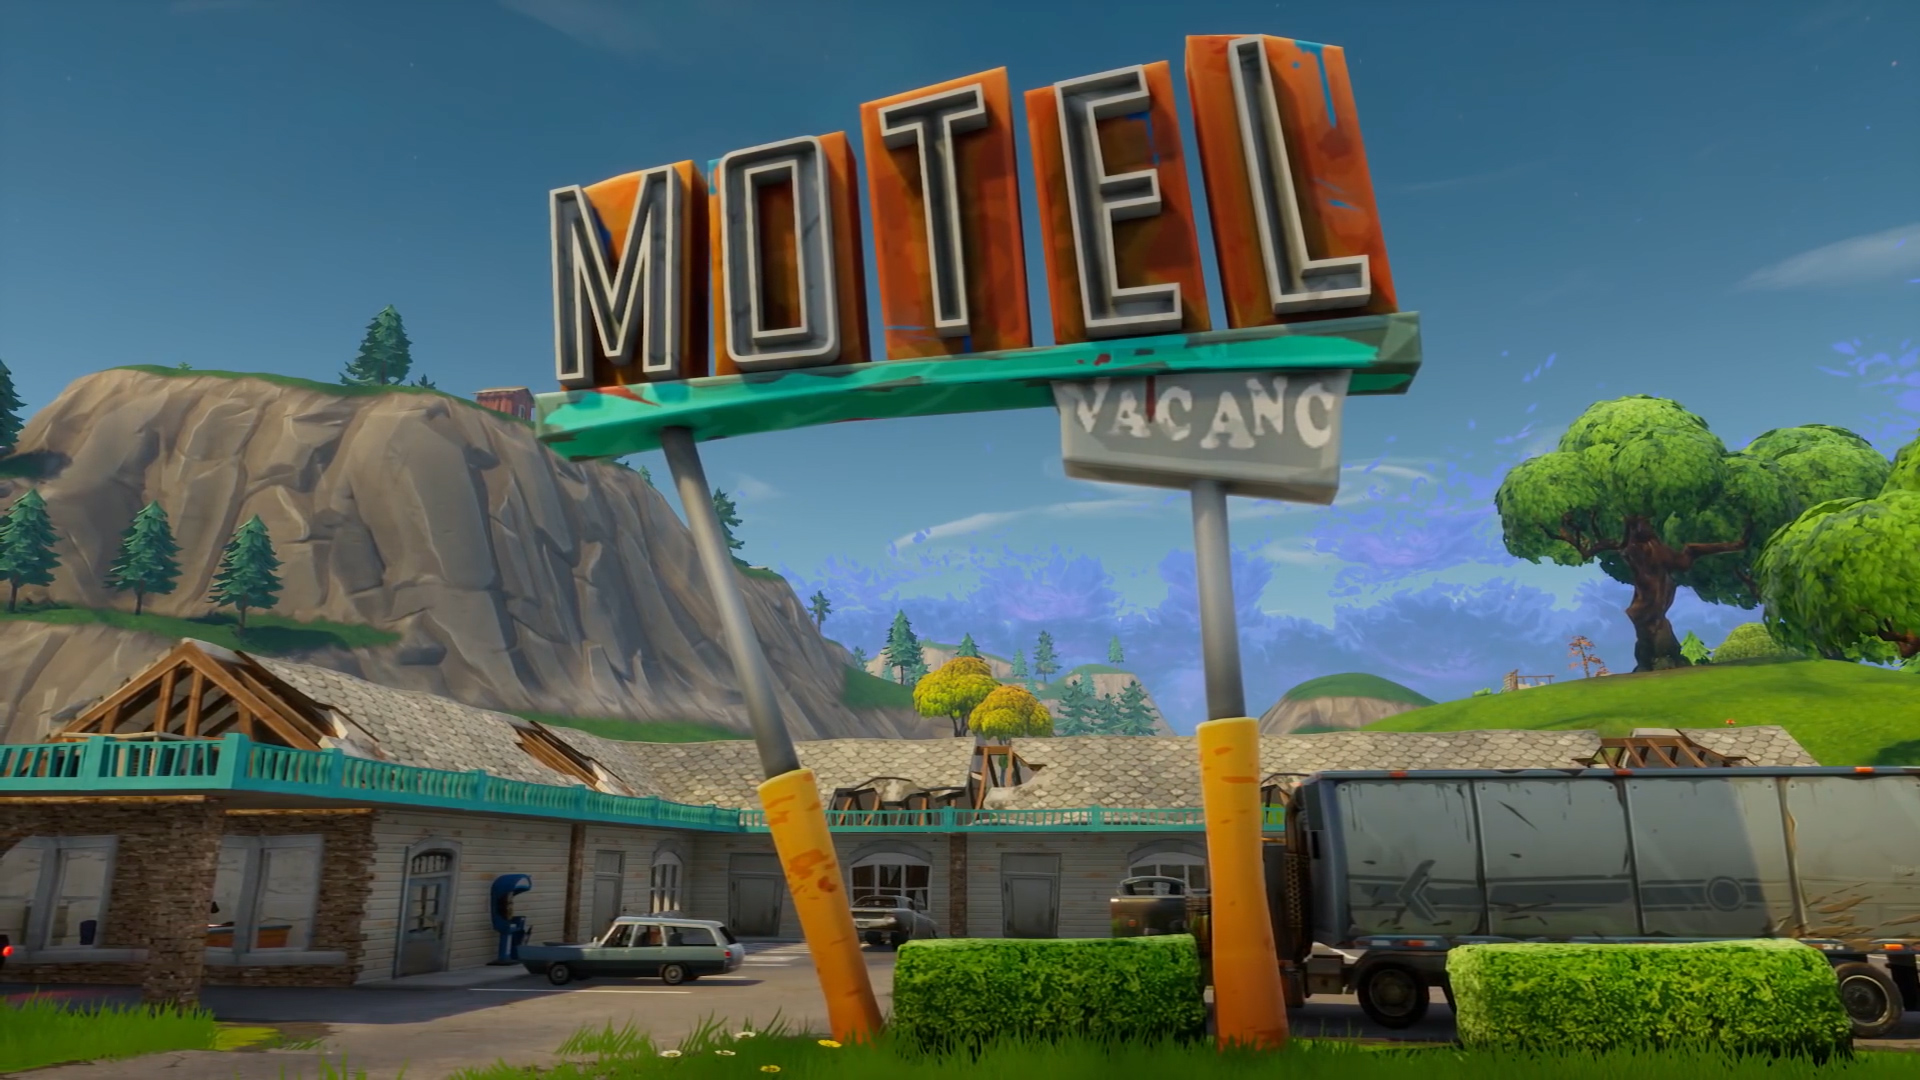 fornite-nouvelle-motel State Of Decay Map Details on dying light map, don't starve map, five nights at freddy's map, the evil within map, the banner saga map, lords of the fallen map, no man's sky map, sunset overdrive map, the elder scrolls v: skyrim map, dead island map, forza horizon 2 map, metal gear solid v: the phantom pain map, just cause 3 map, state decay breakdown, batman: arkham knight map, bound by flame map, dayz map, dragon age: inquisition map, until dawn map, l.a. noire map,